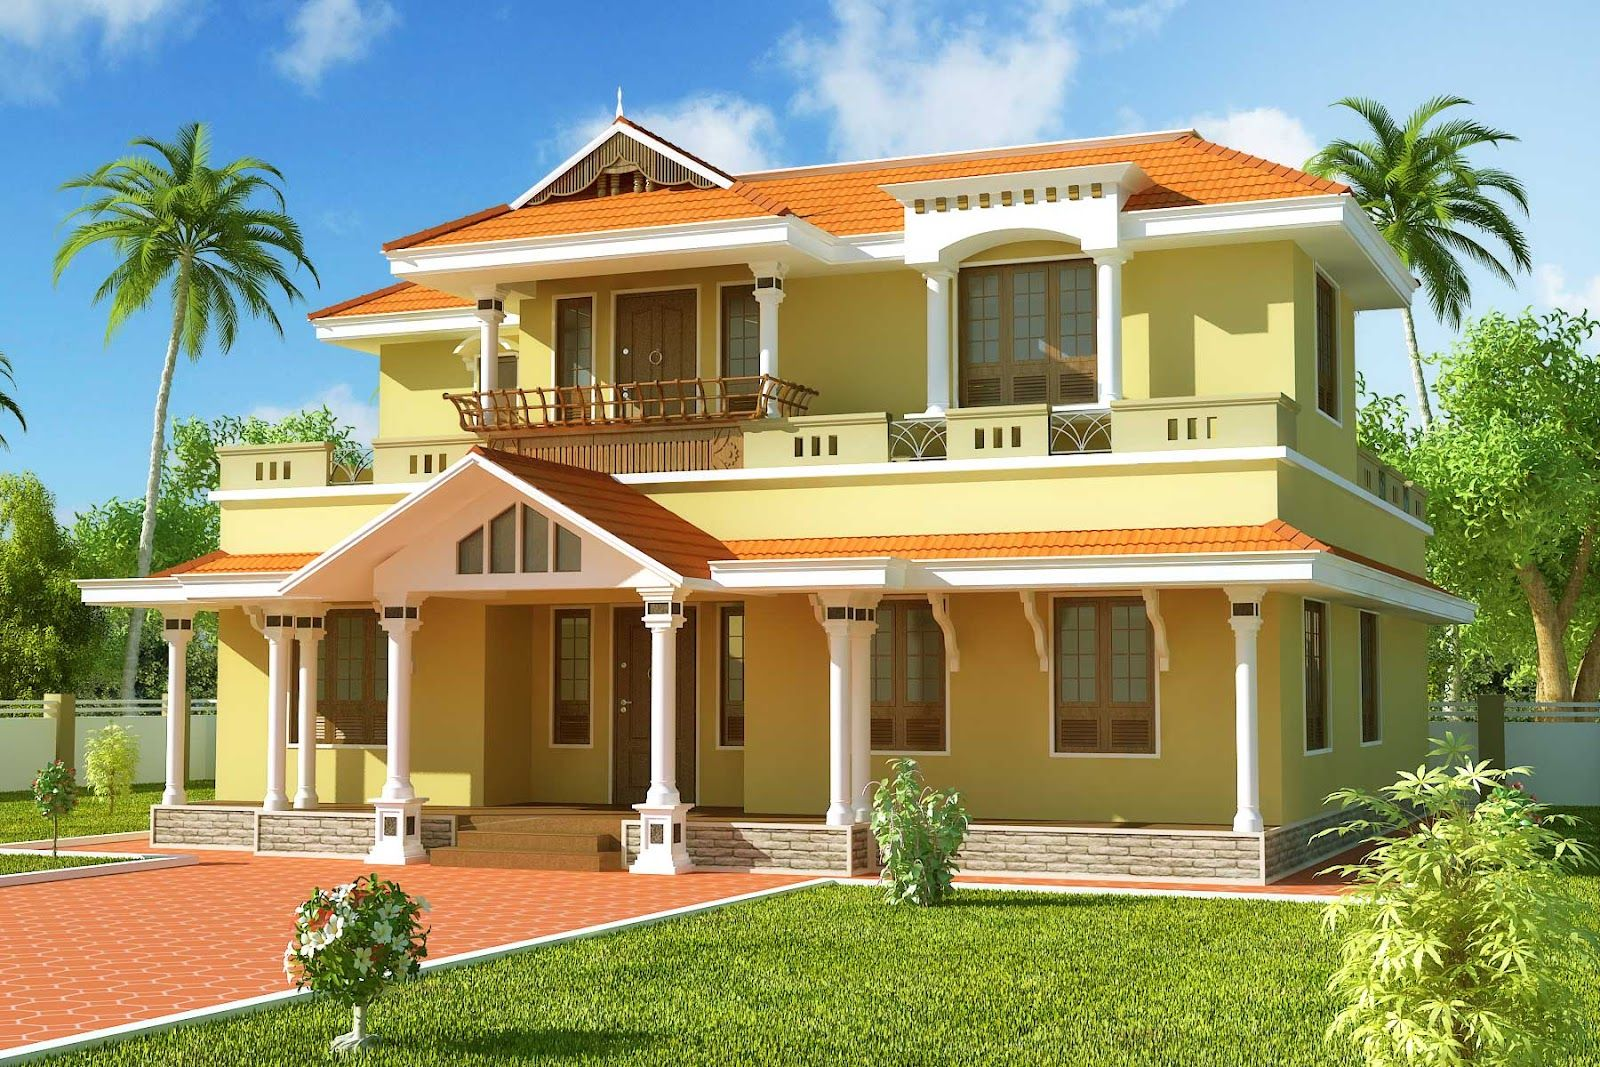 model home designs. Trans Kerala Home Design Latest Elevation At 2550 Sq Ft home design do check out http www keralahouseplanner com